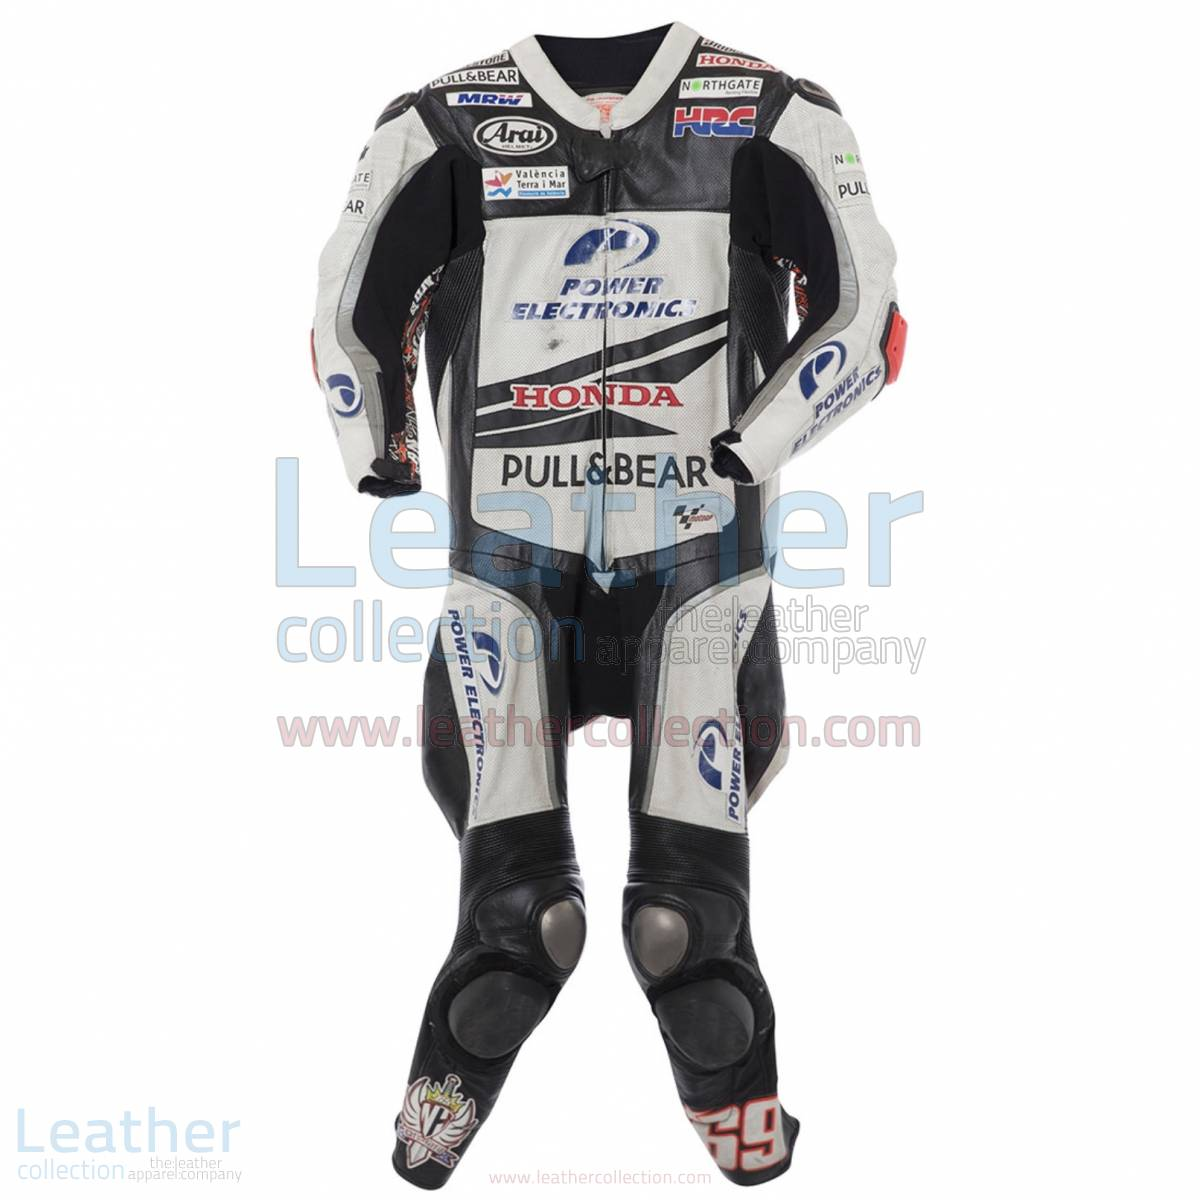 Honda race suit